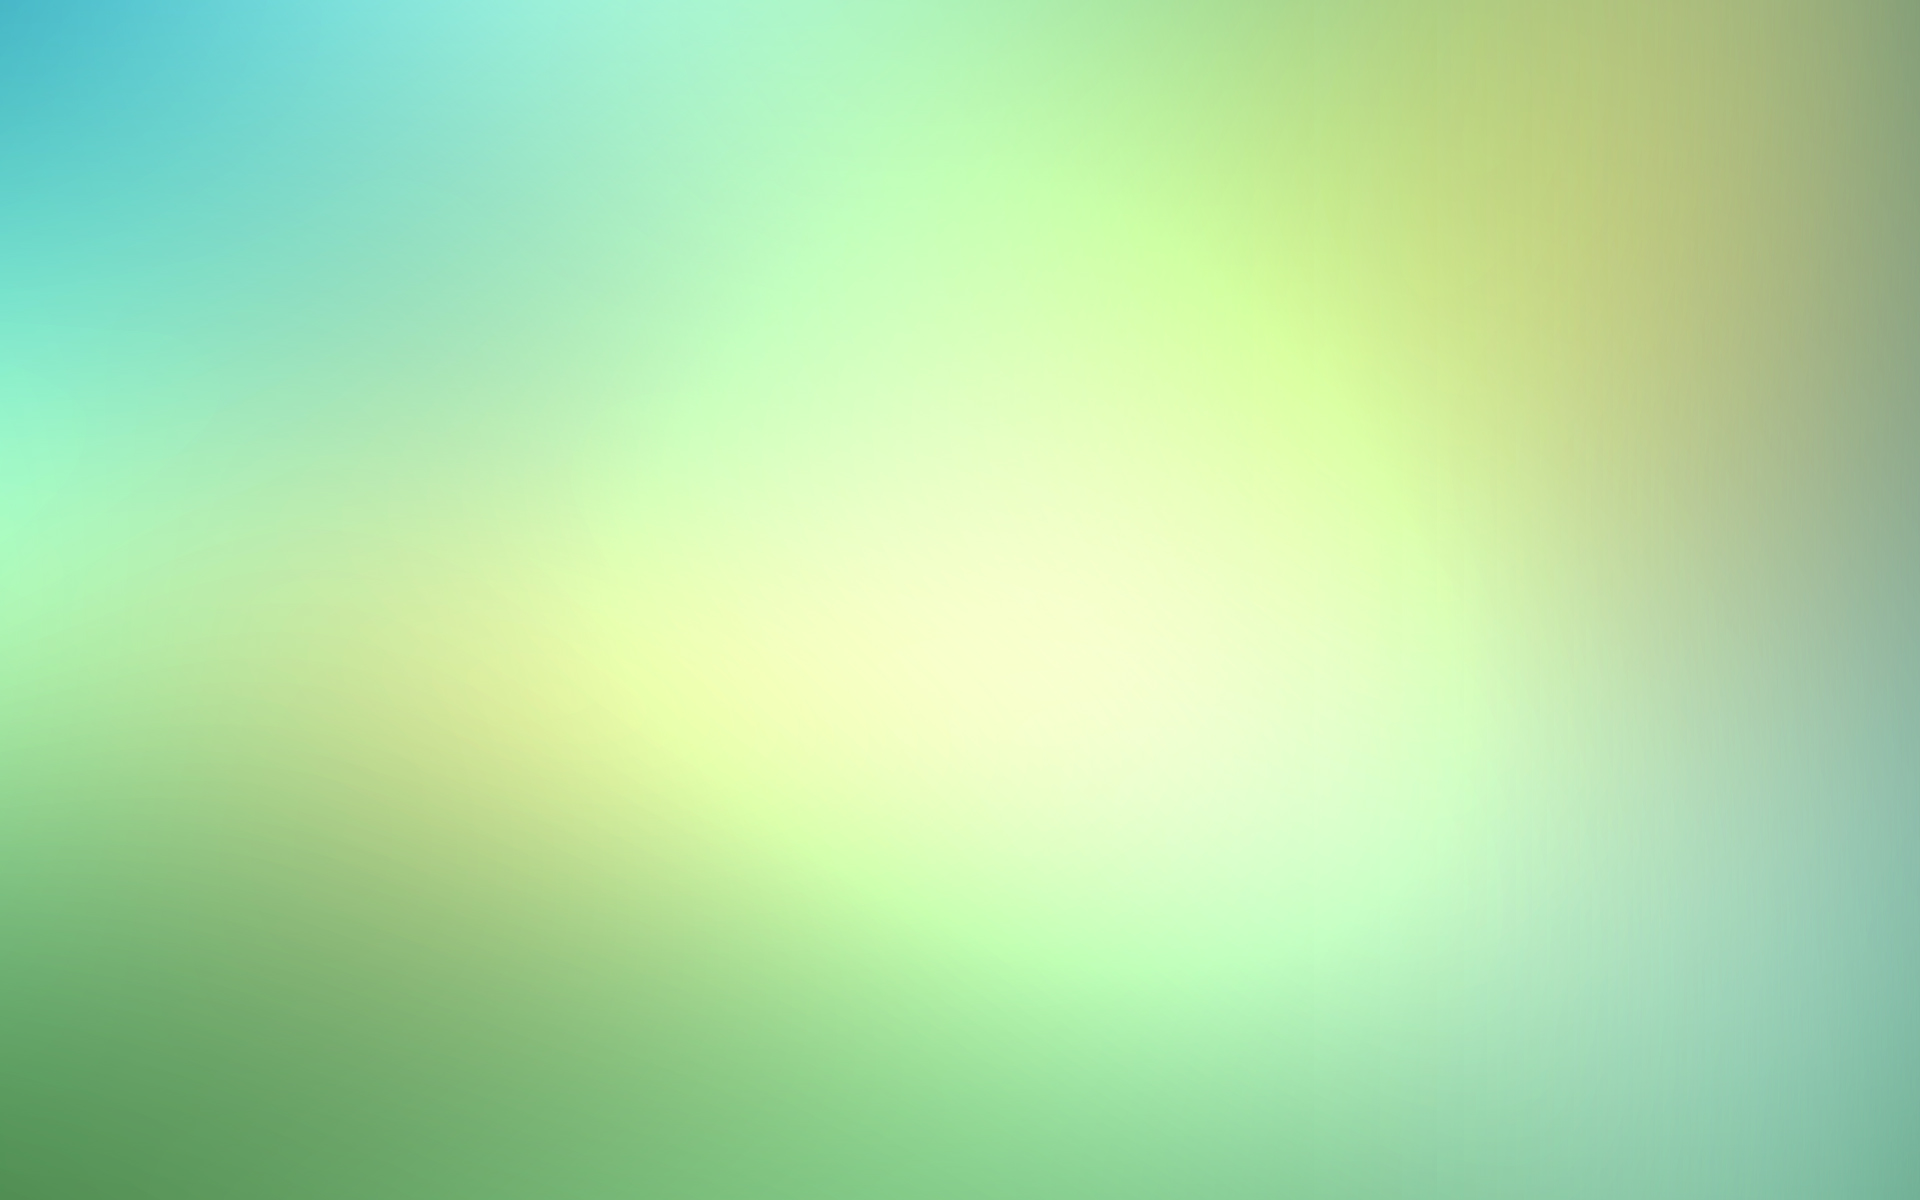 Simple Color Wallpaper